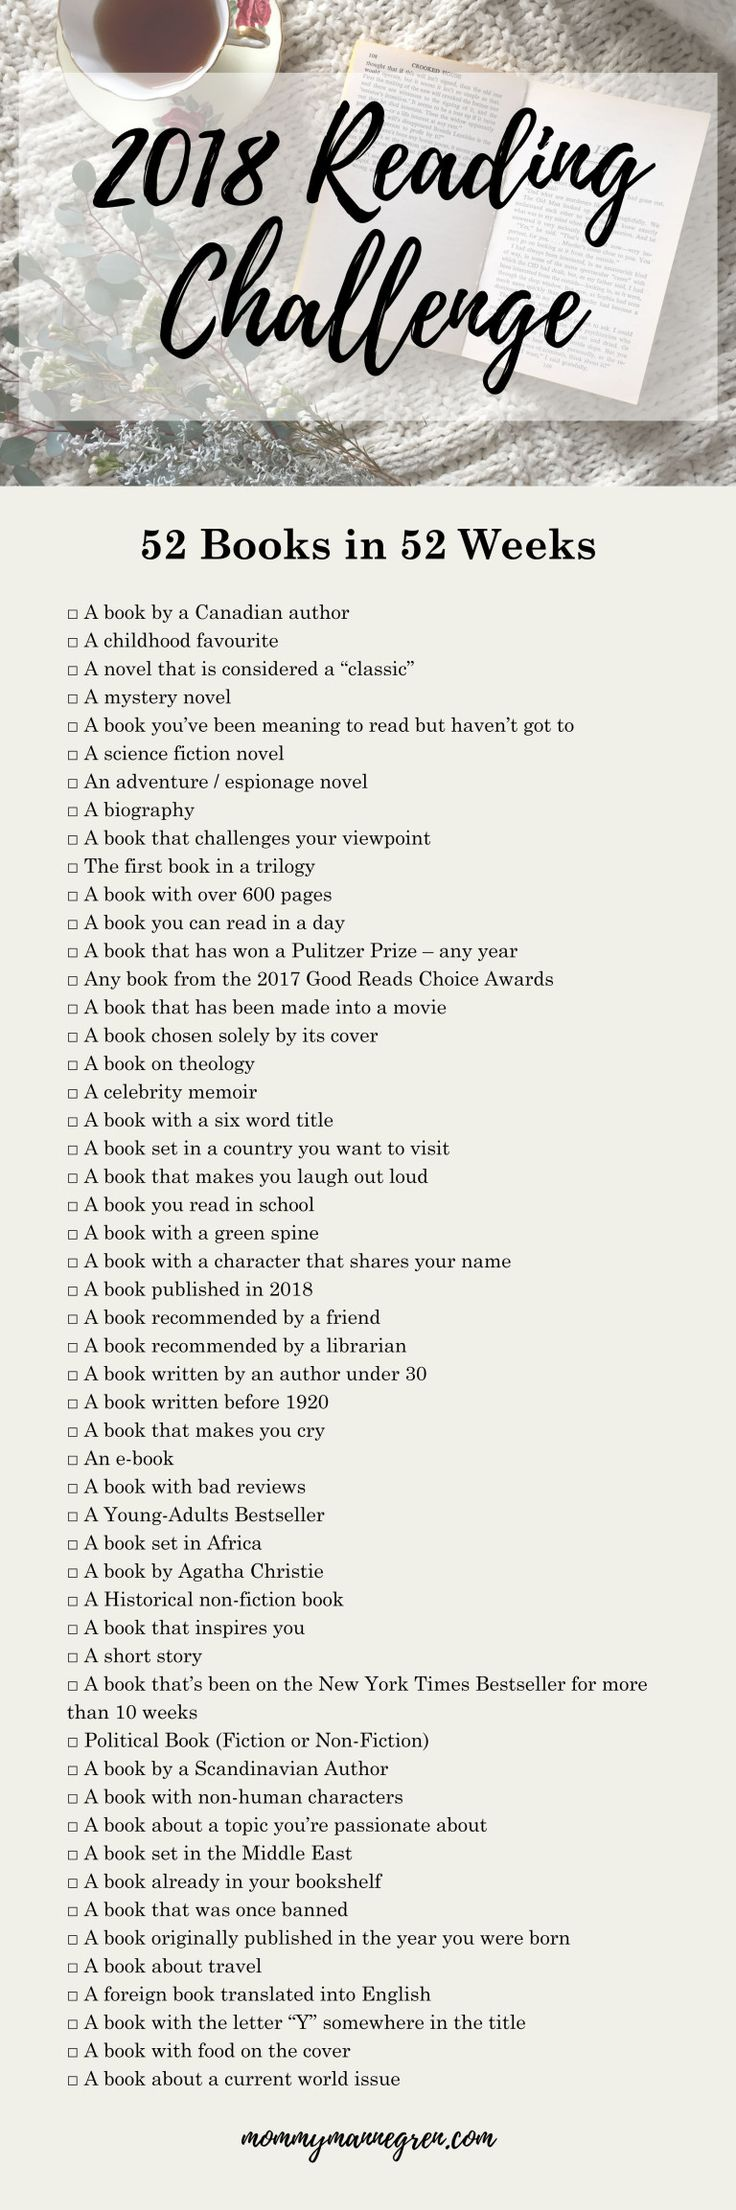 Not really for the library... but I do need a librarians suggestion! 2018 Reading List